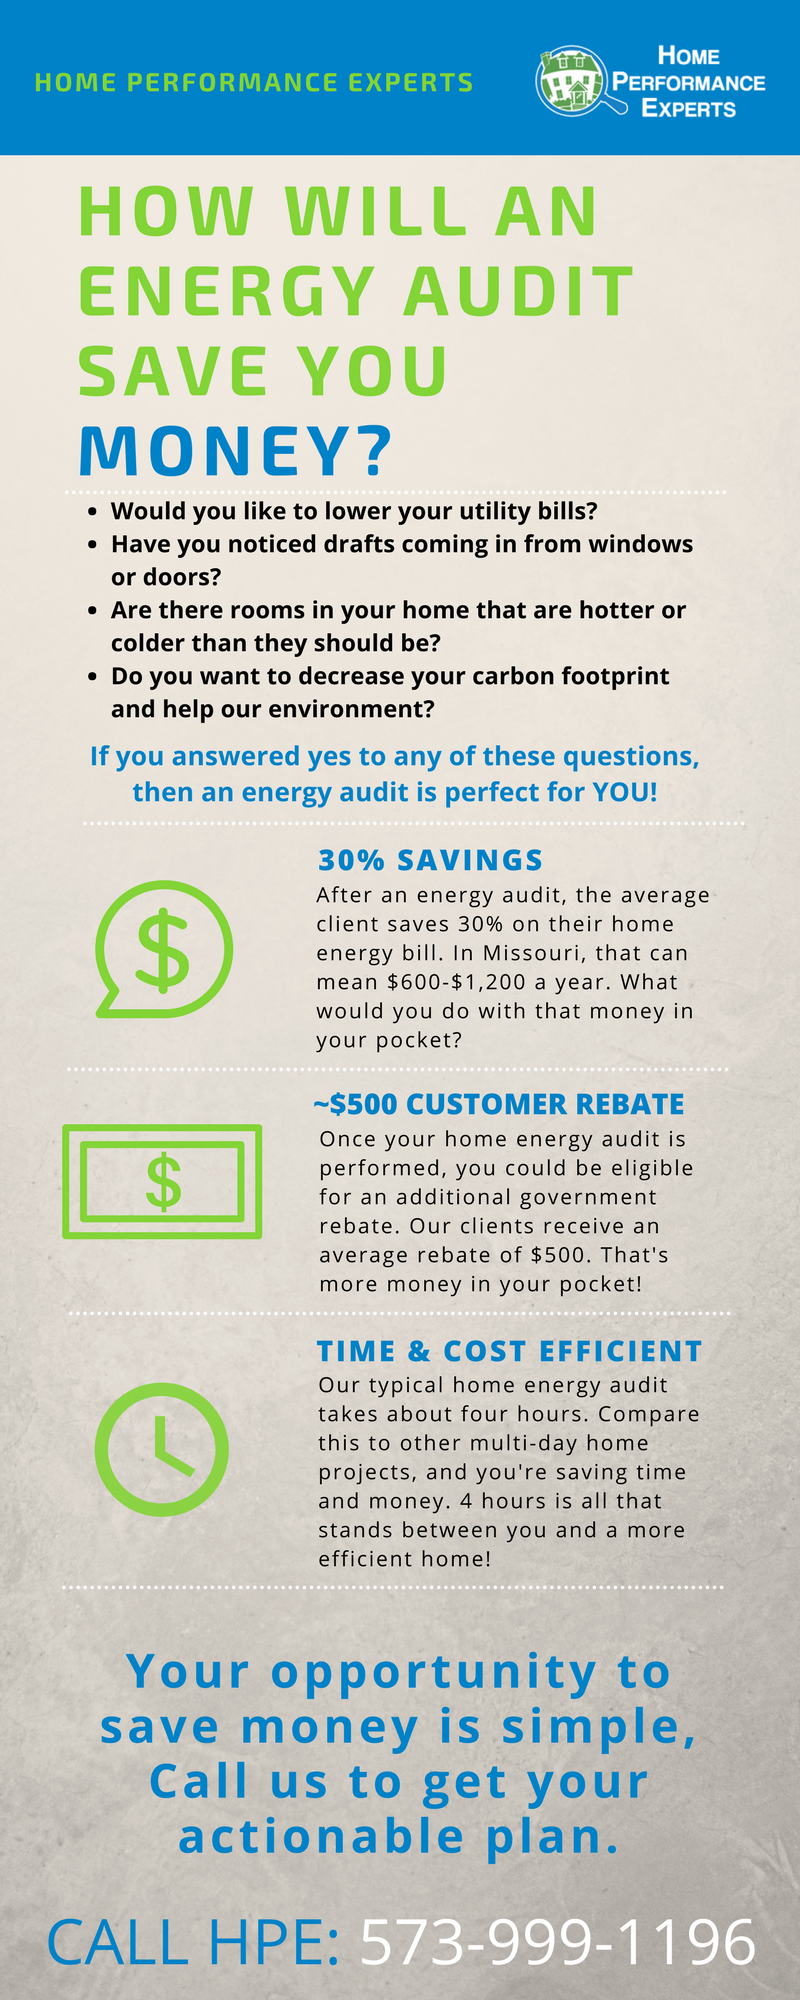 energy-audit-infographic